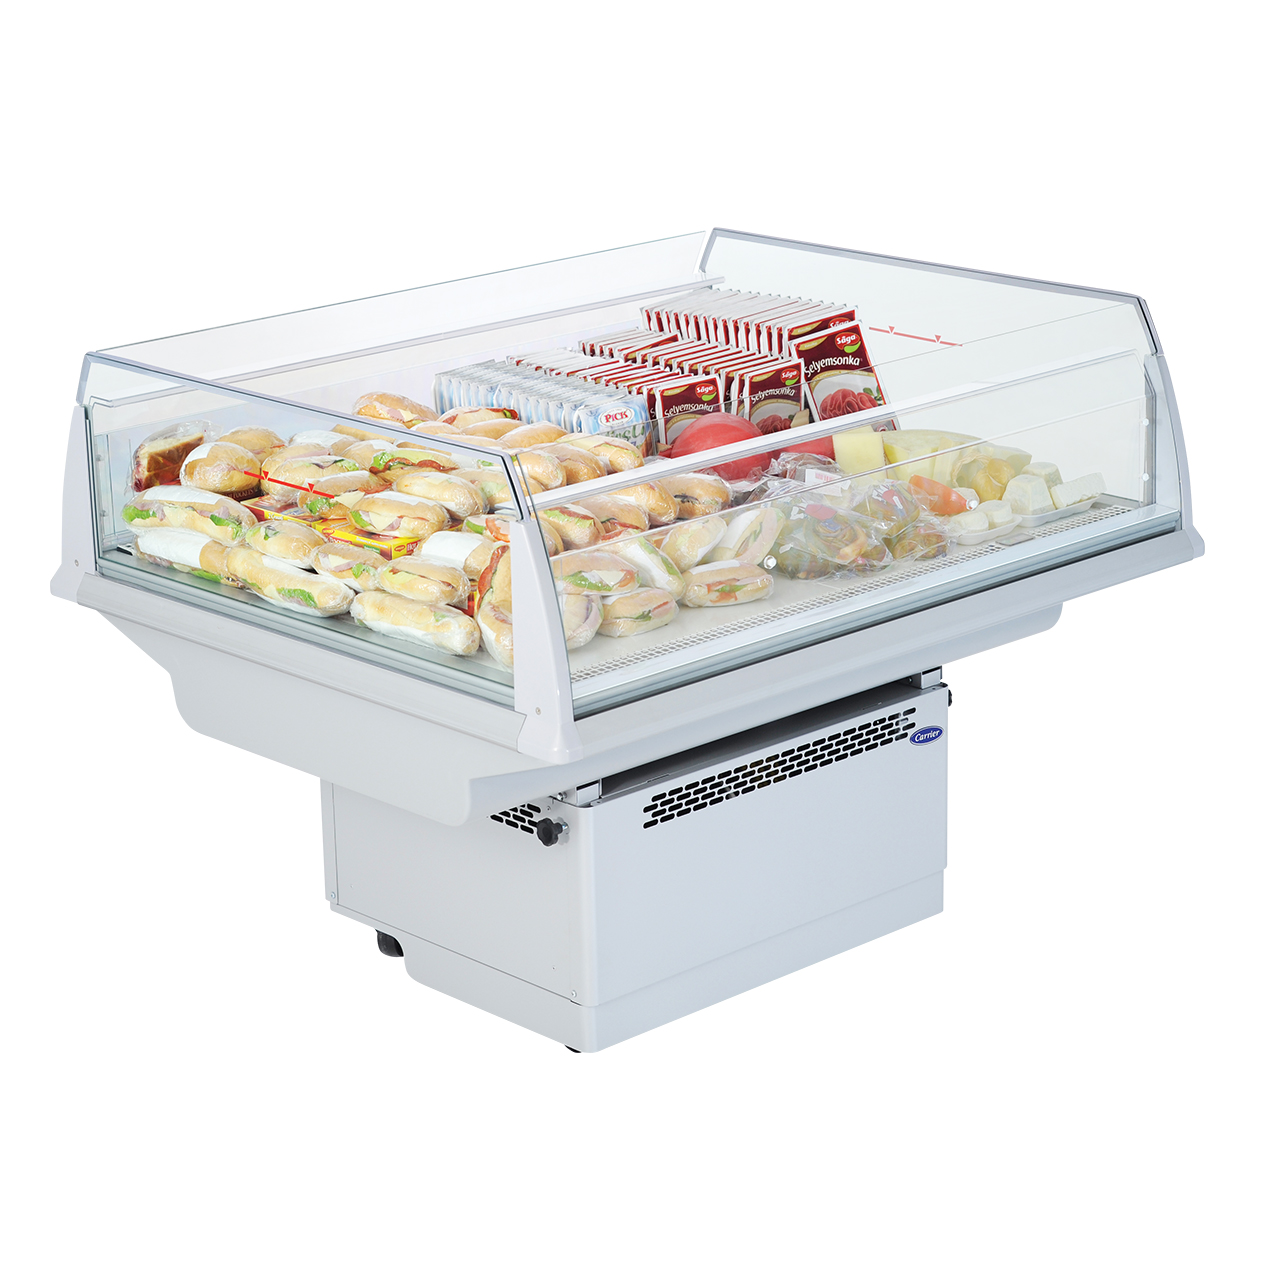 refrigerated-counter-areor-D